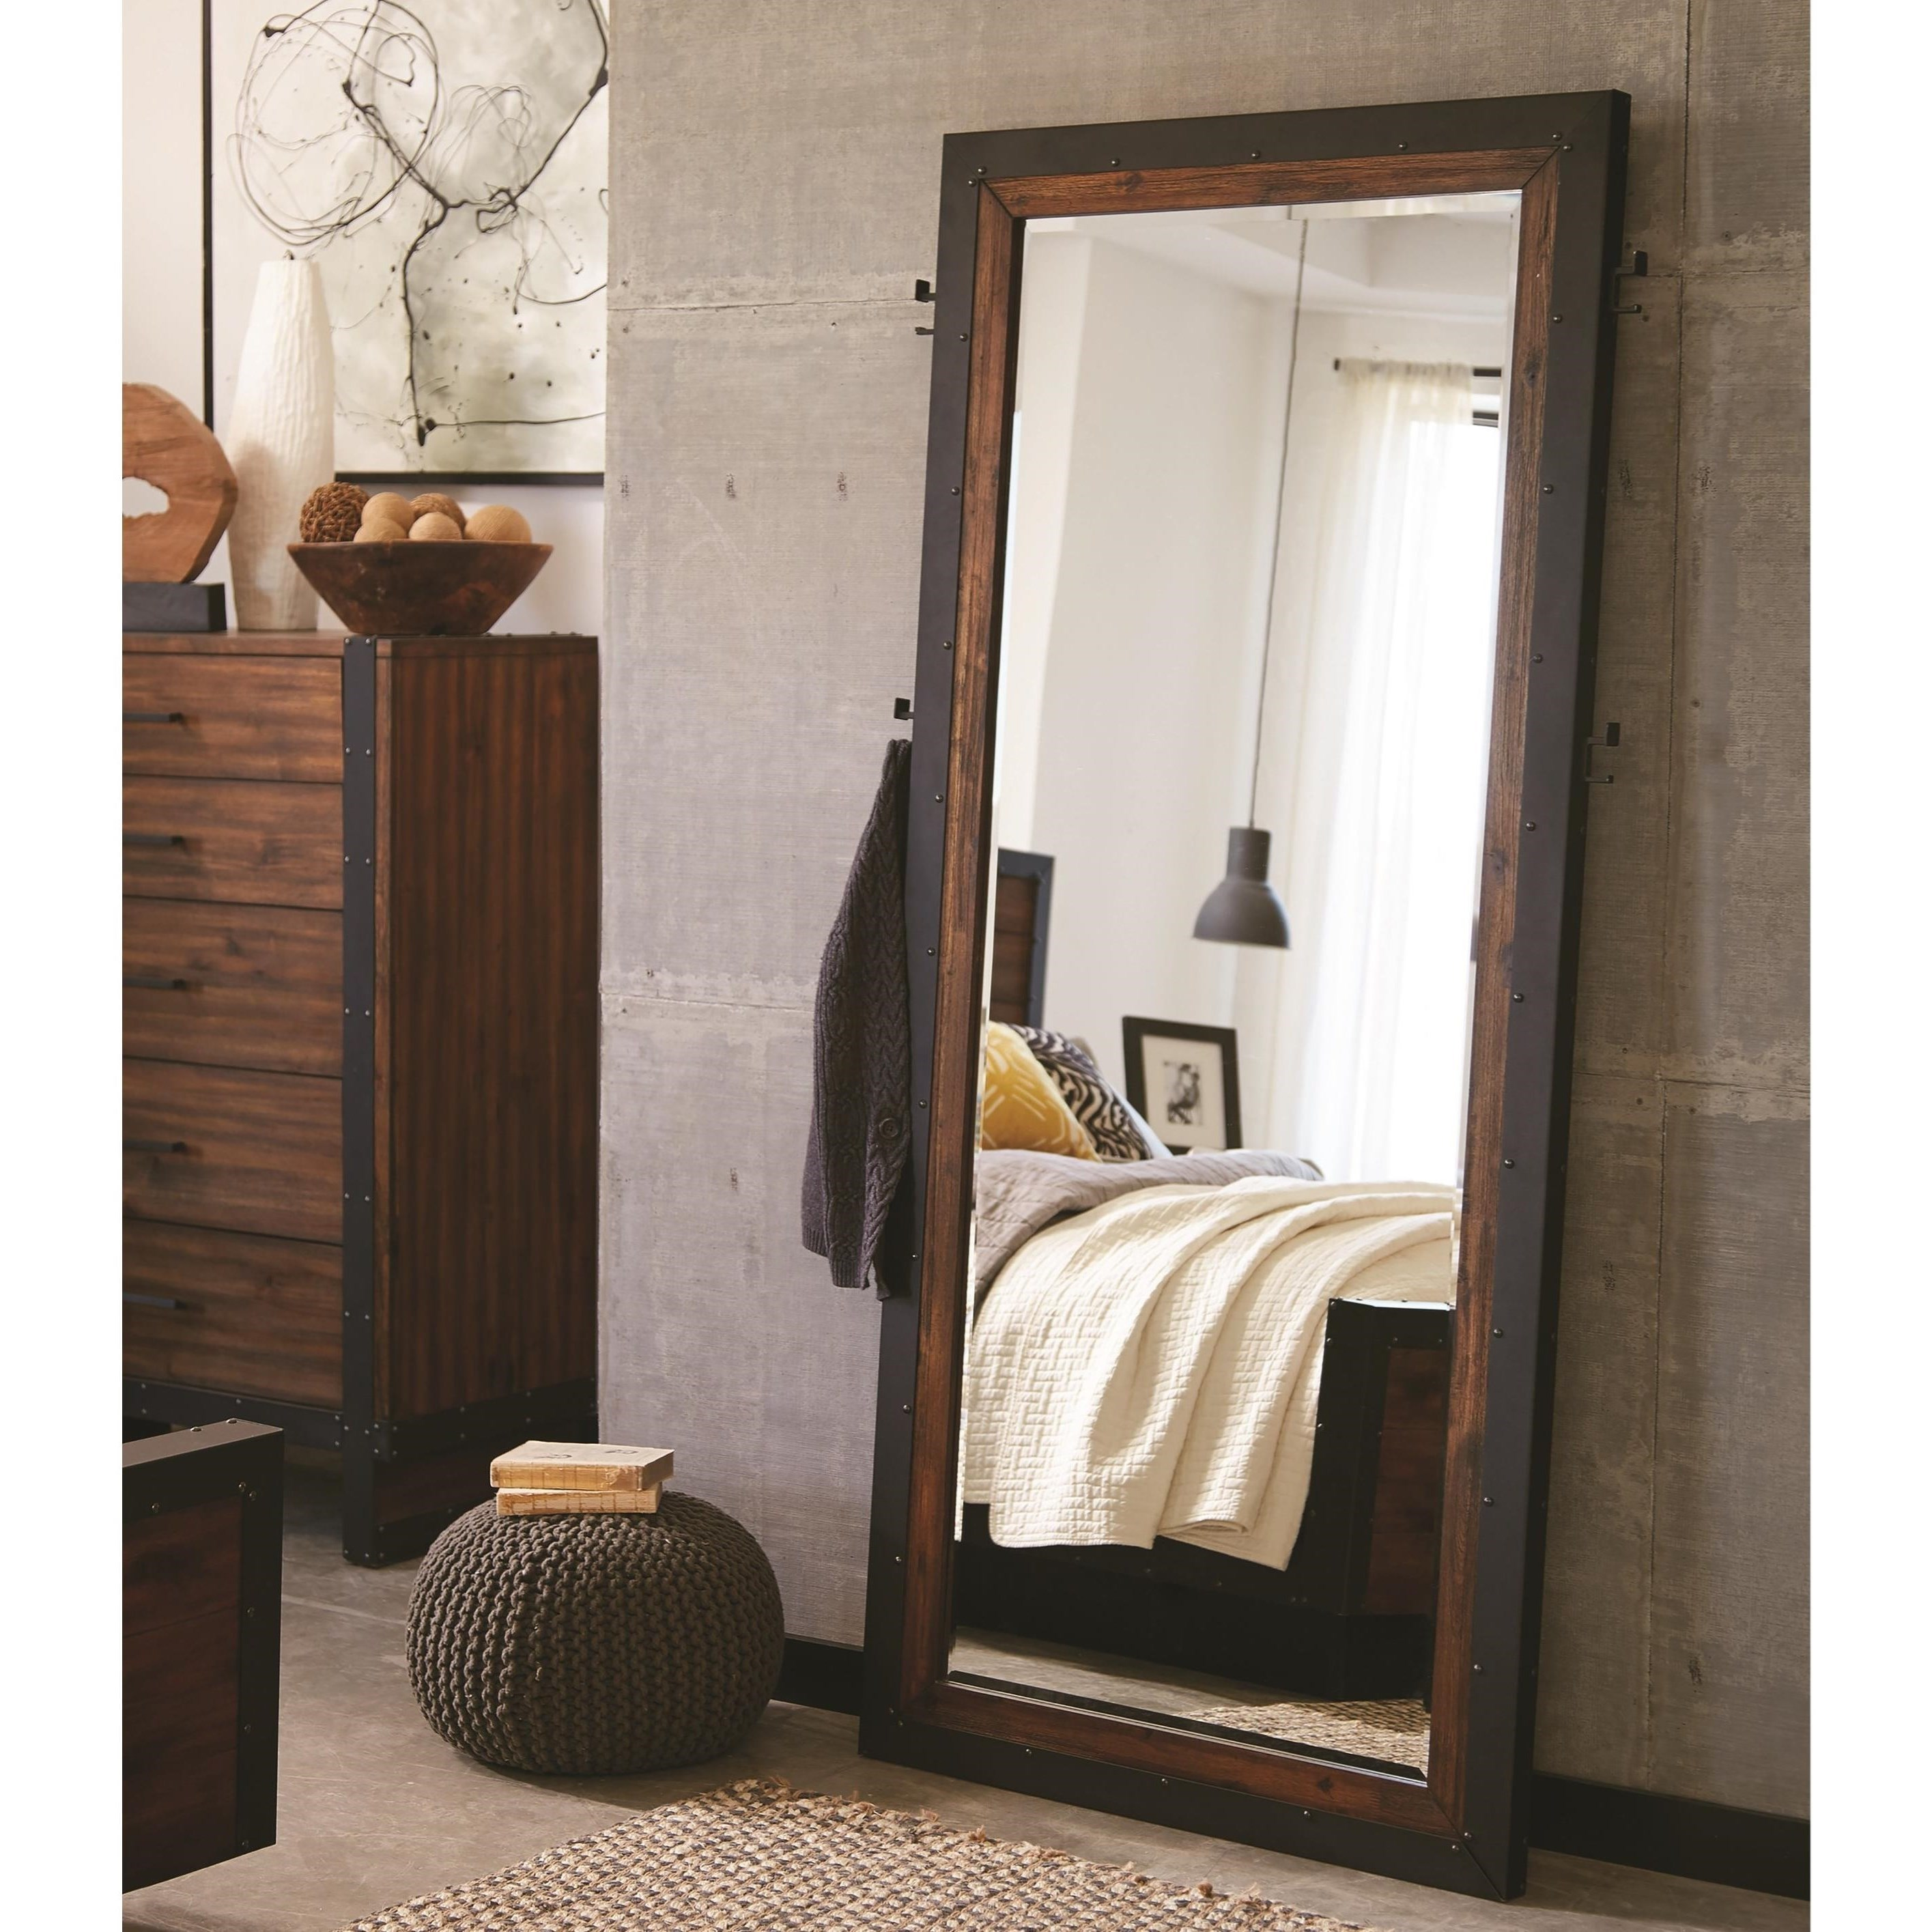 Ellison Industrial Floor Mirror with Metal Frame | Quality furniture ...